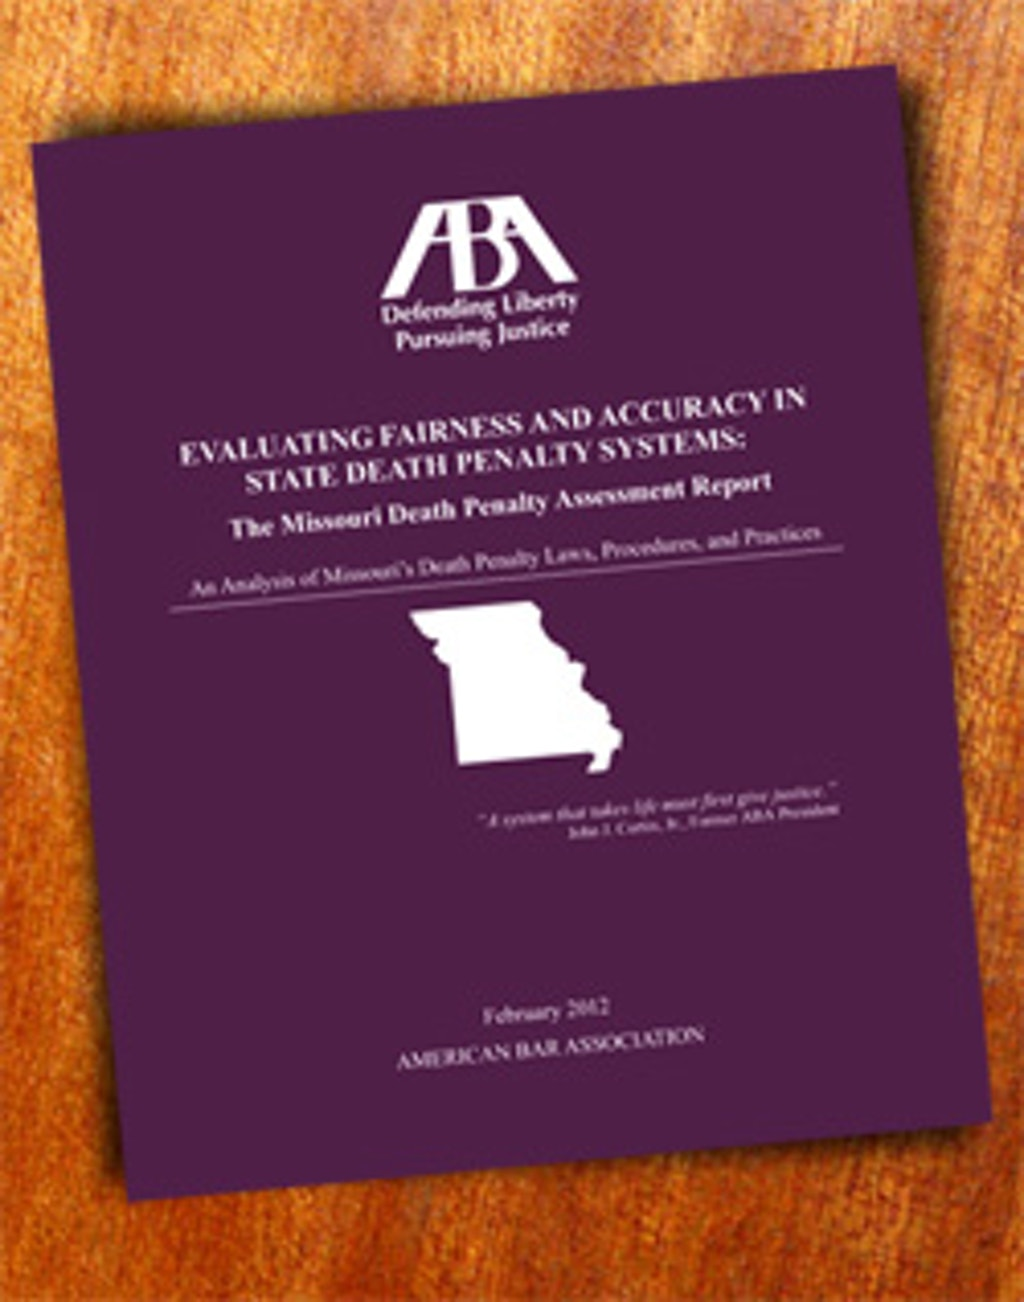 STUDIES: American Bar Association Recommends Reforms to Missouri's Death Penalty